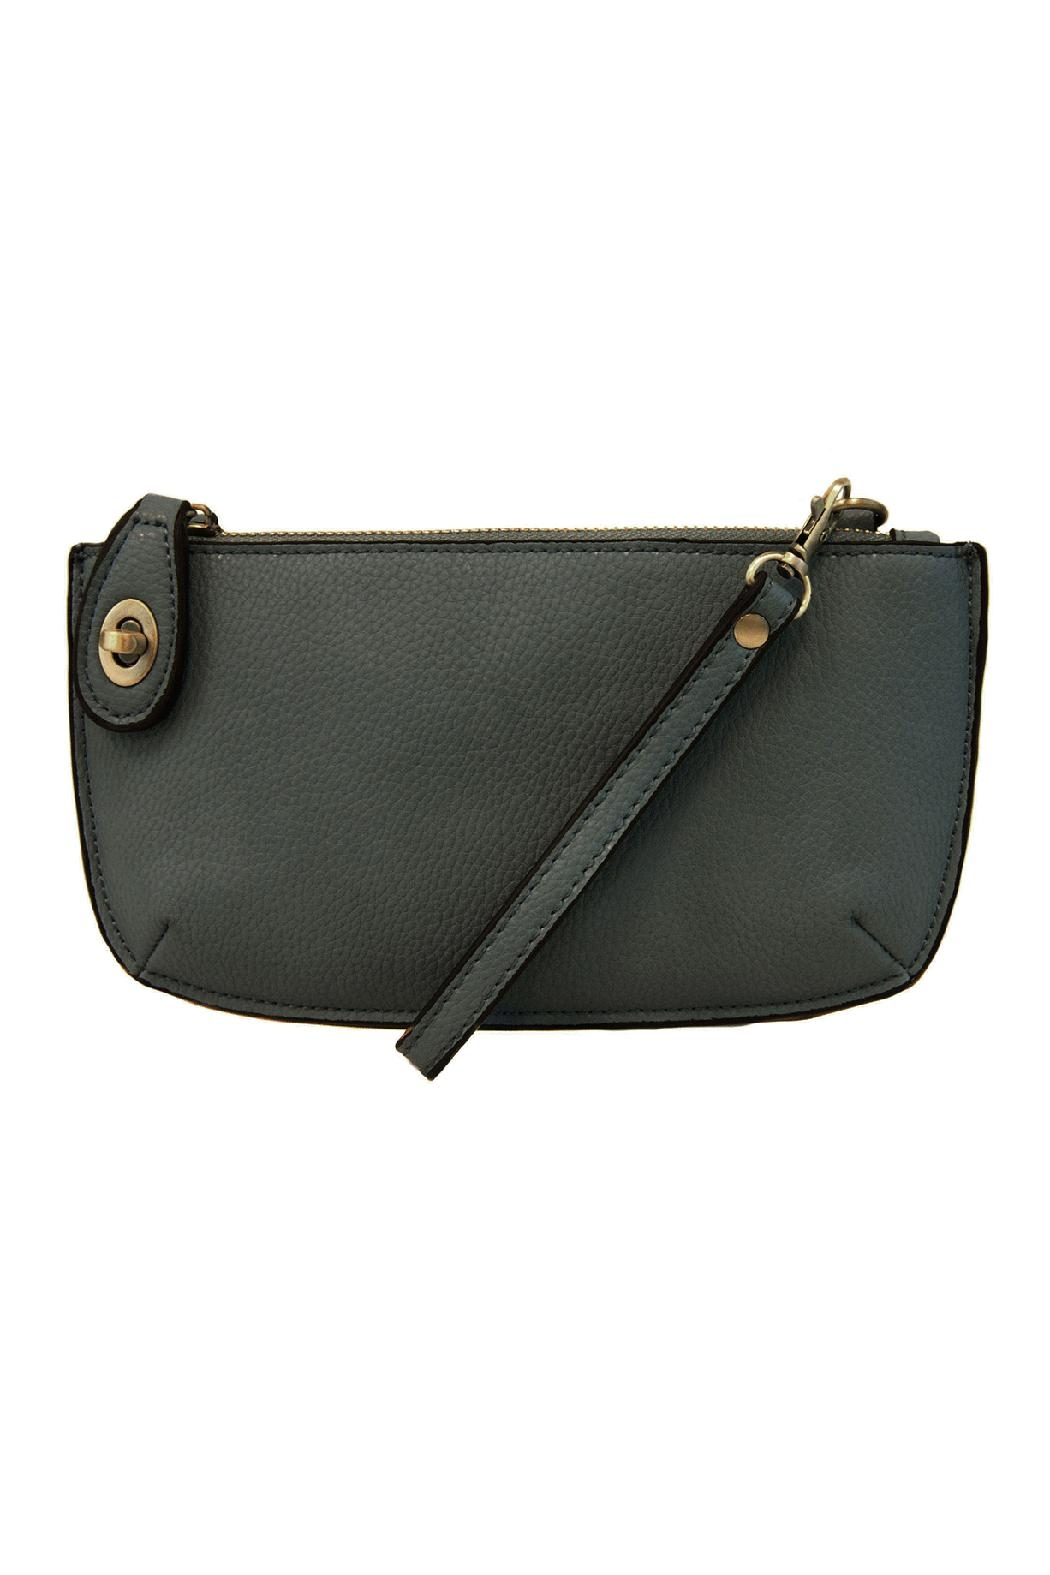 Joy Susan Accessories Crossbody Wristlet Clutch - Main Image